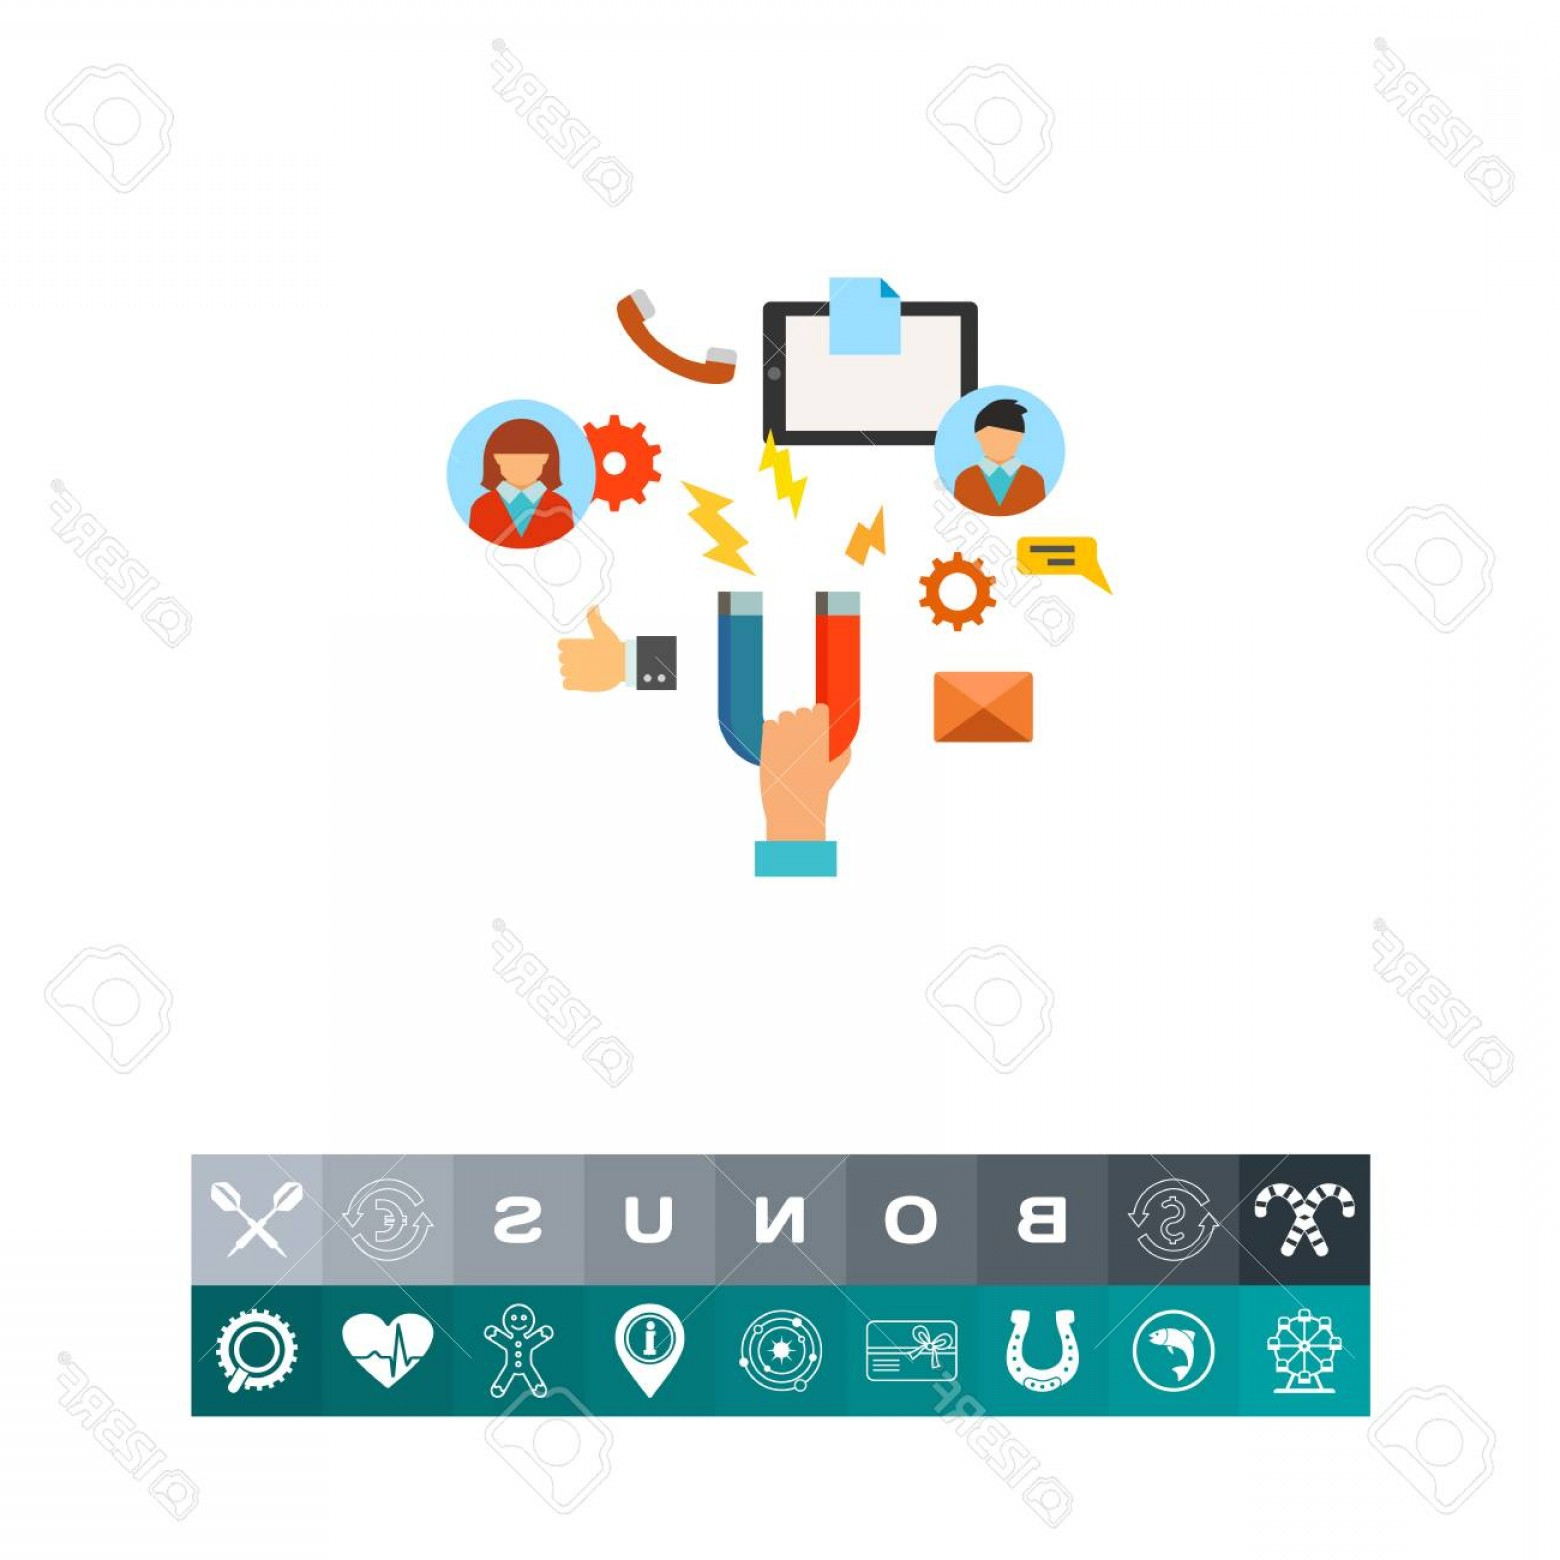 Attraction Icon Vector: Photostock Vector Magnet In Hand As Customer Attraction Icon